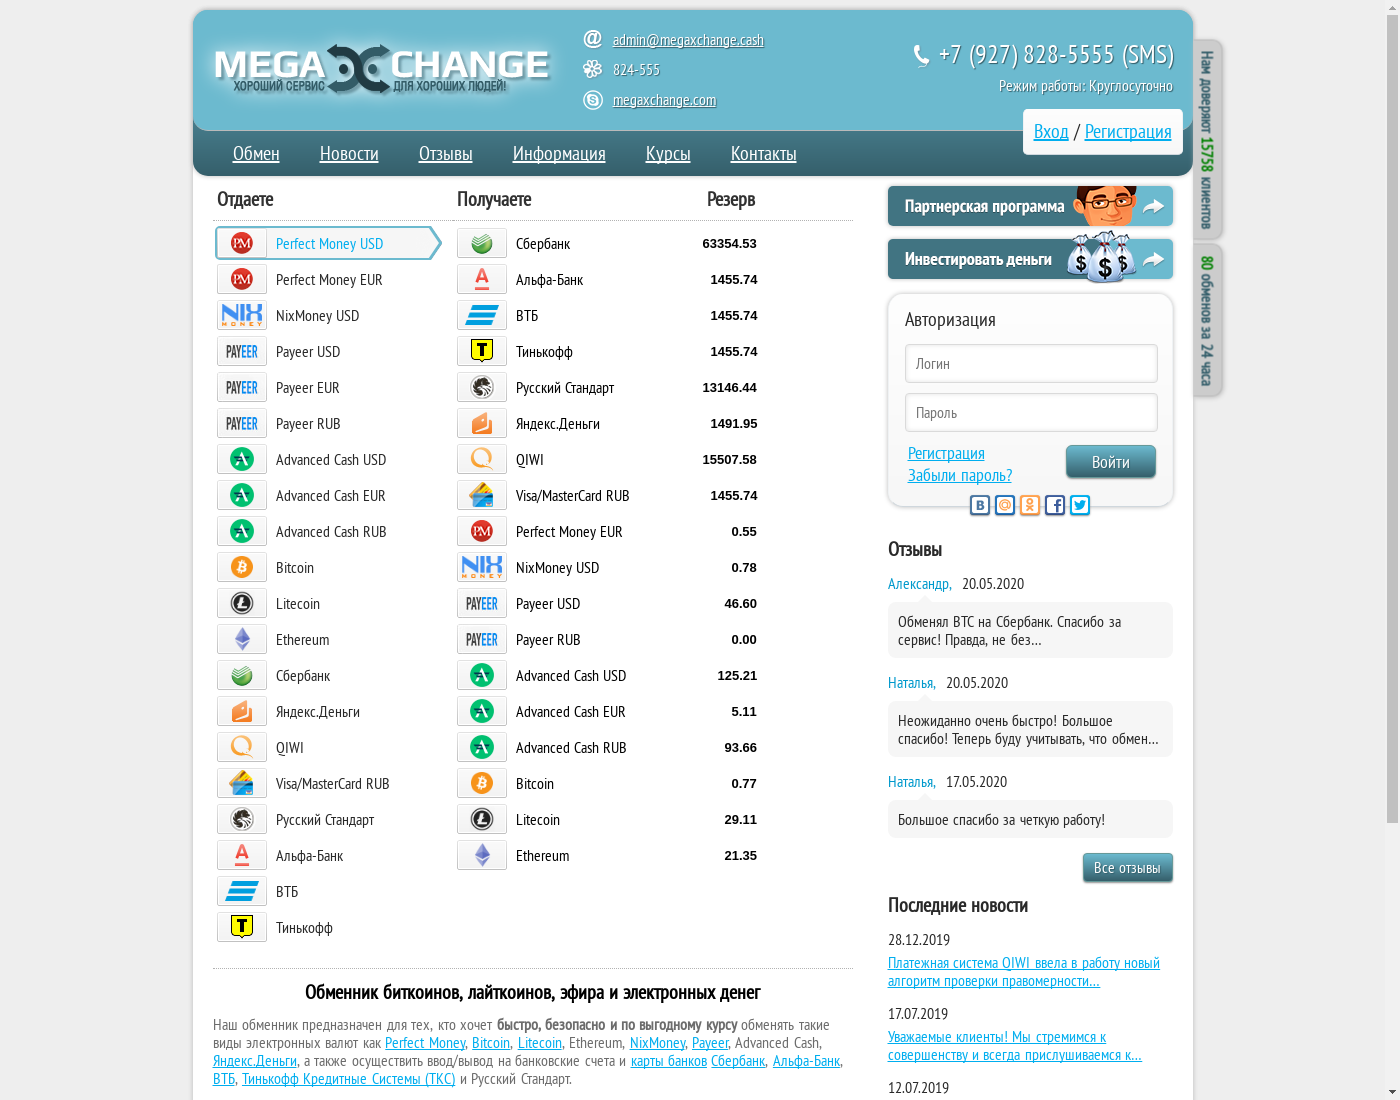 MegaXChange user interface: the home page in English